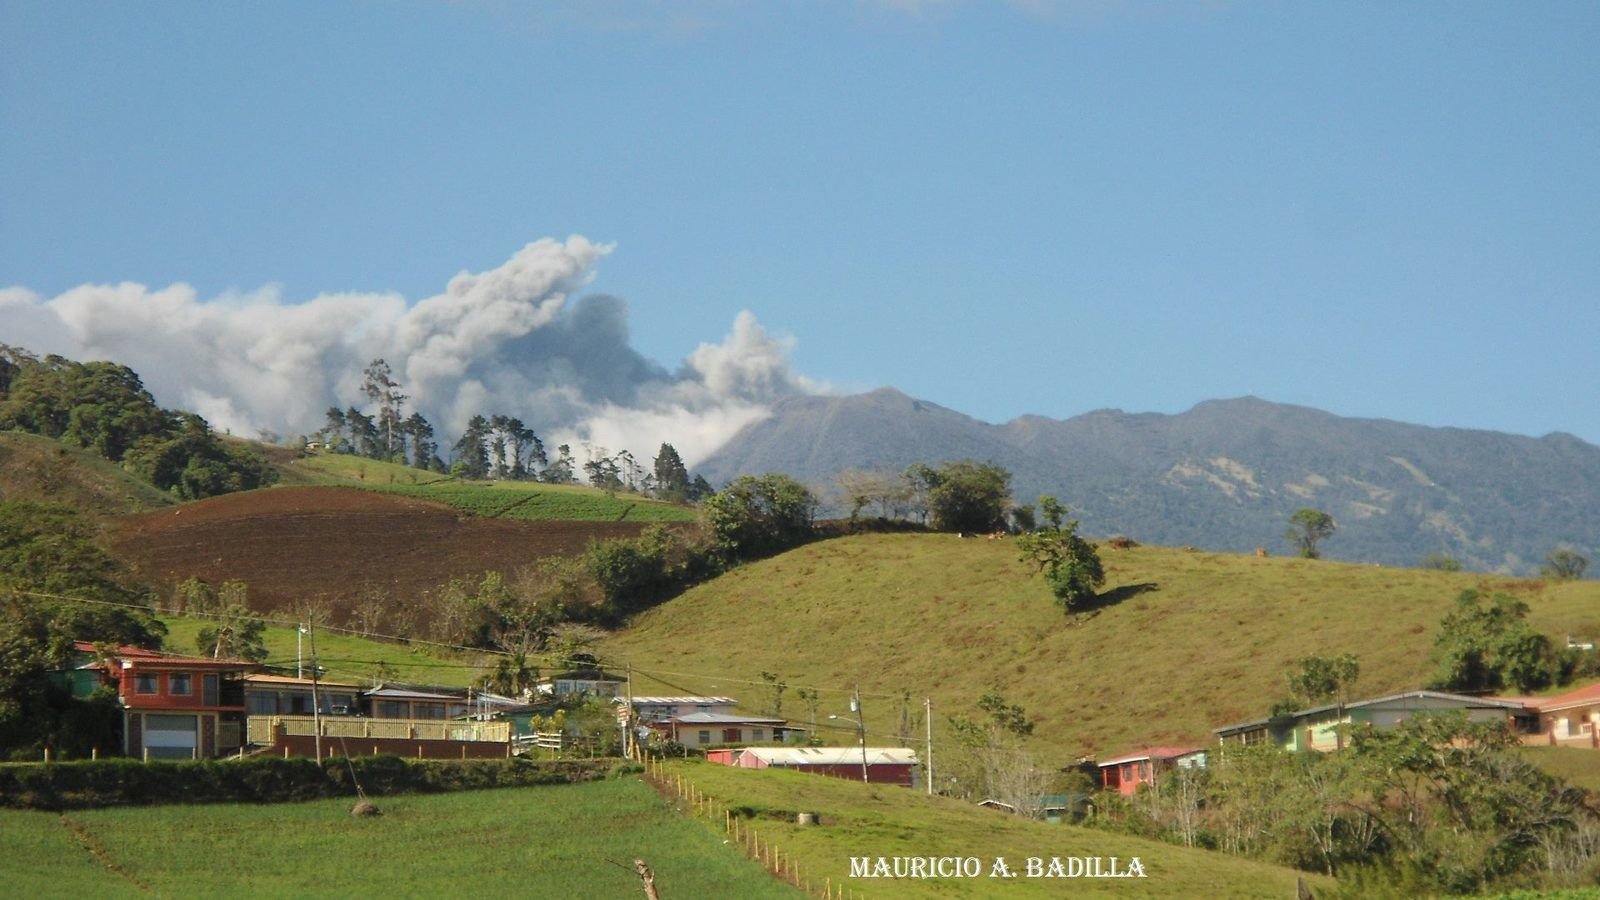 Turrialba - éruption de cendres du 08.03.2015 / 15h - photo Mauricio Alejandro Masis  / RSN